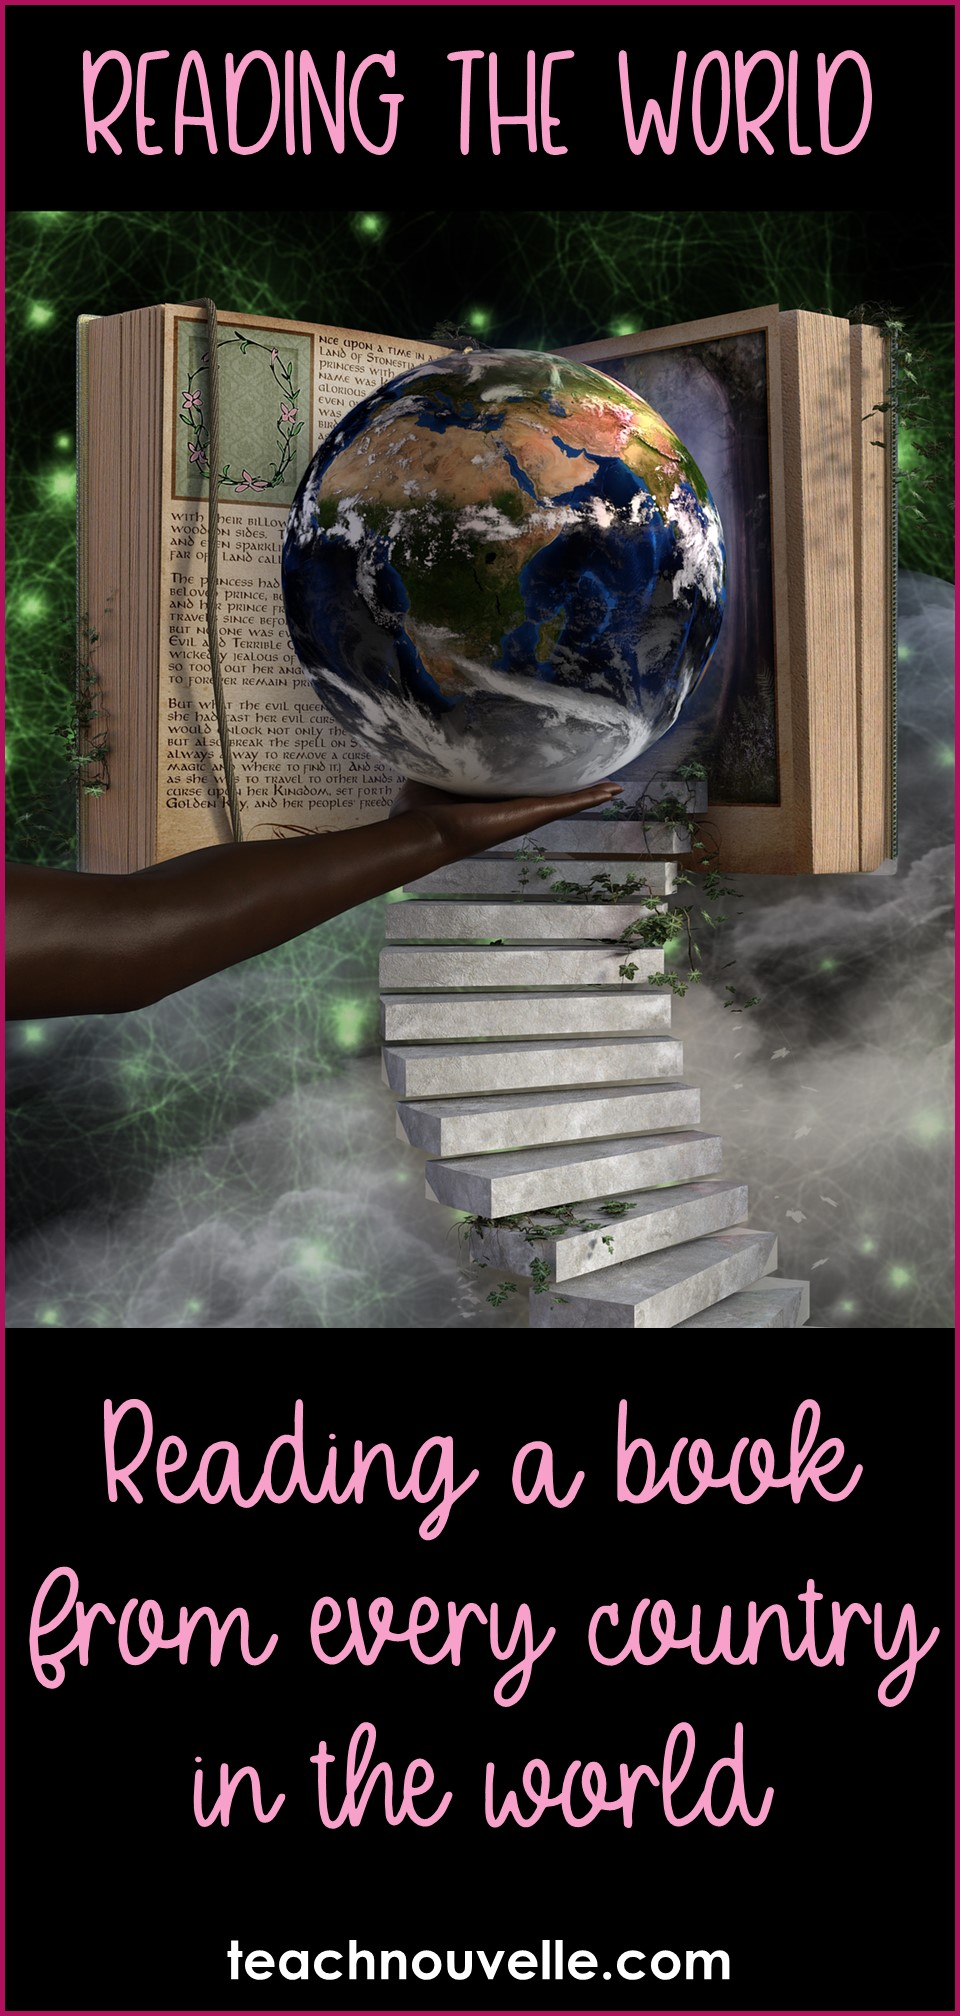 Reading the World Challenge - Here's a master list of titles and recommendations as I read a book from every country in the world. (blog post from teachnouvelle.com)